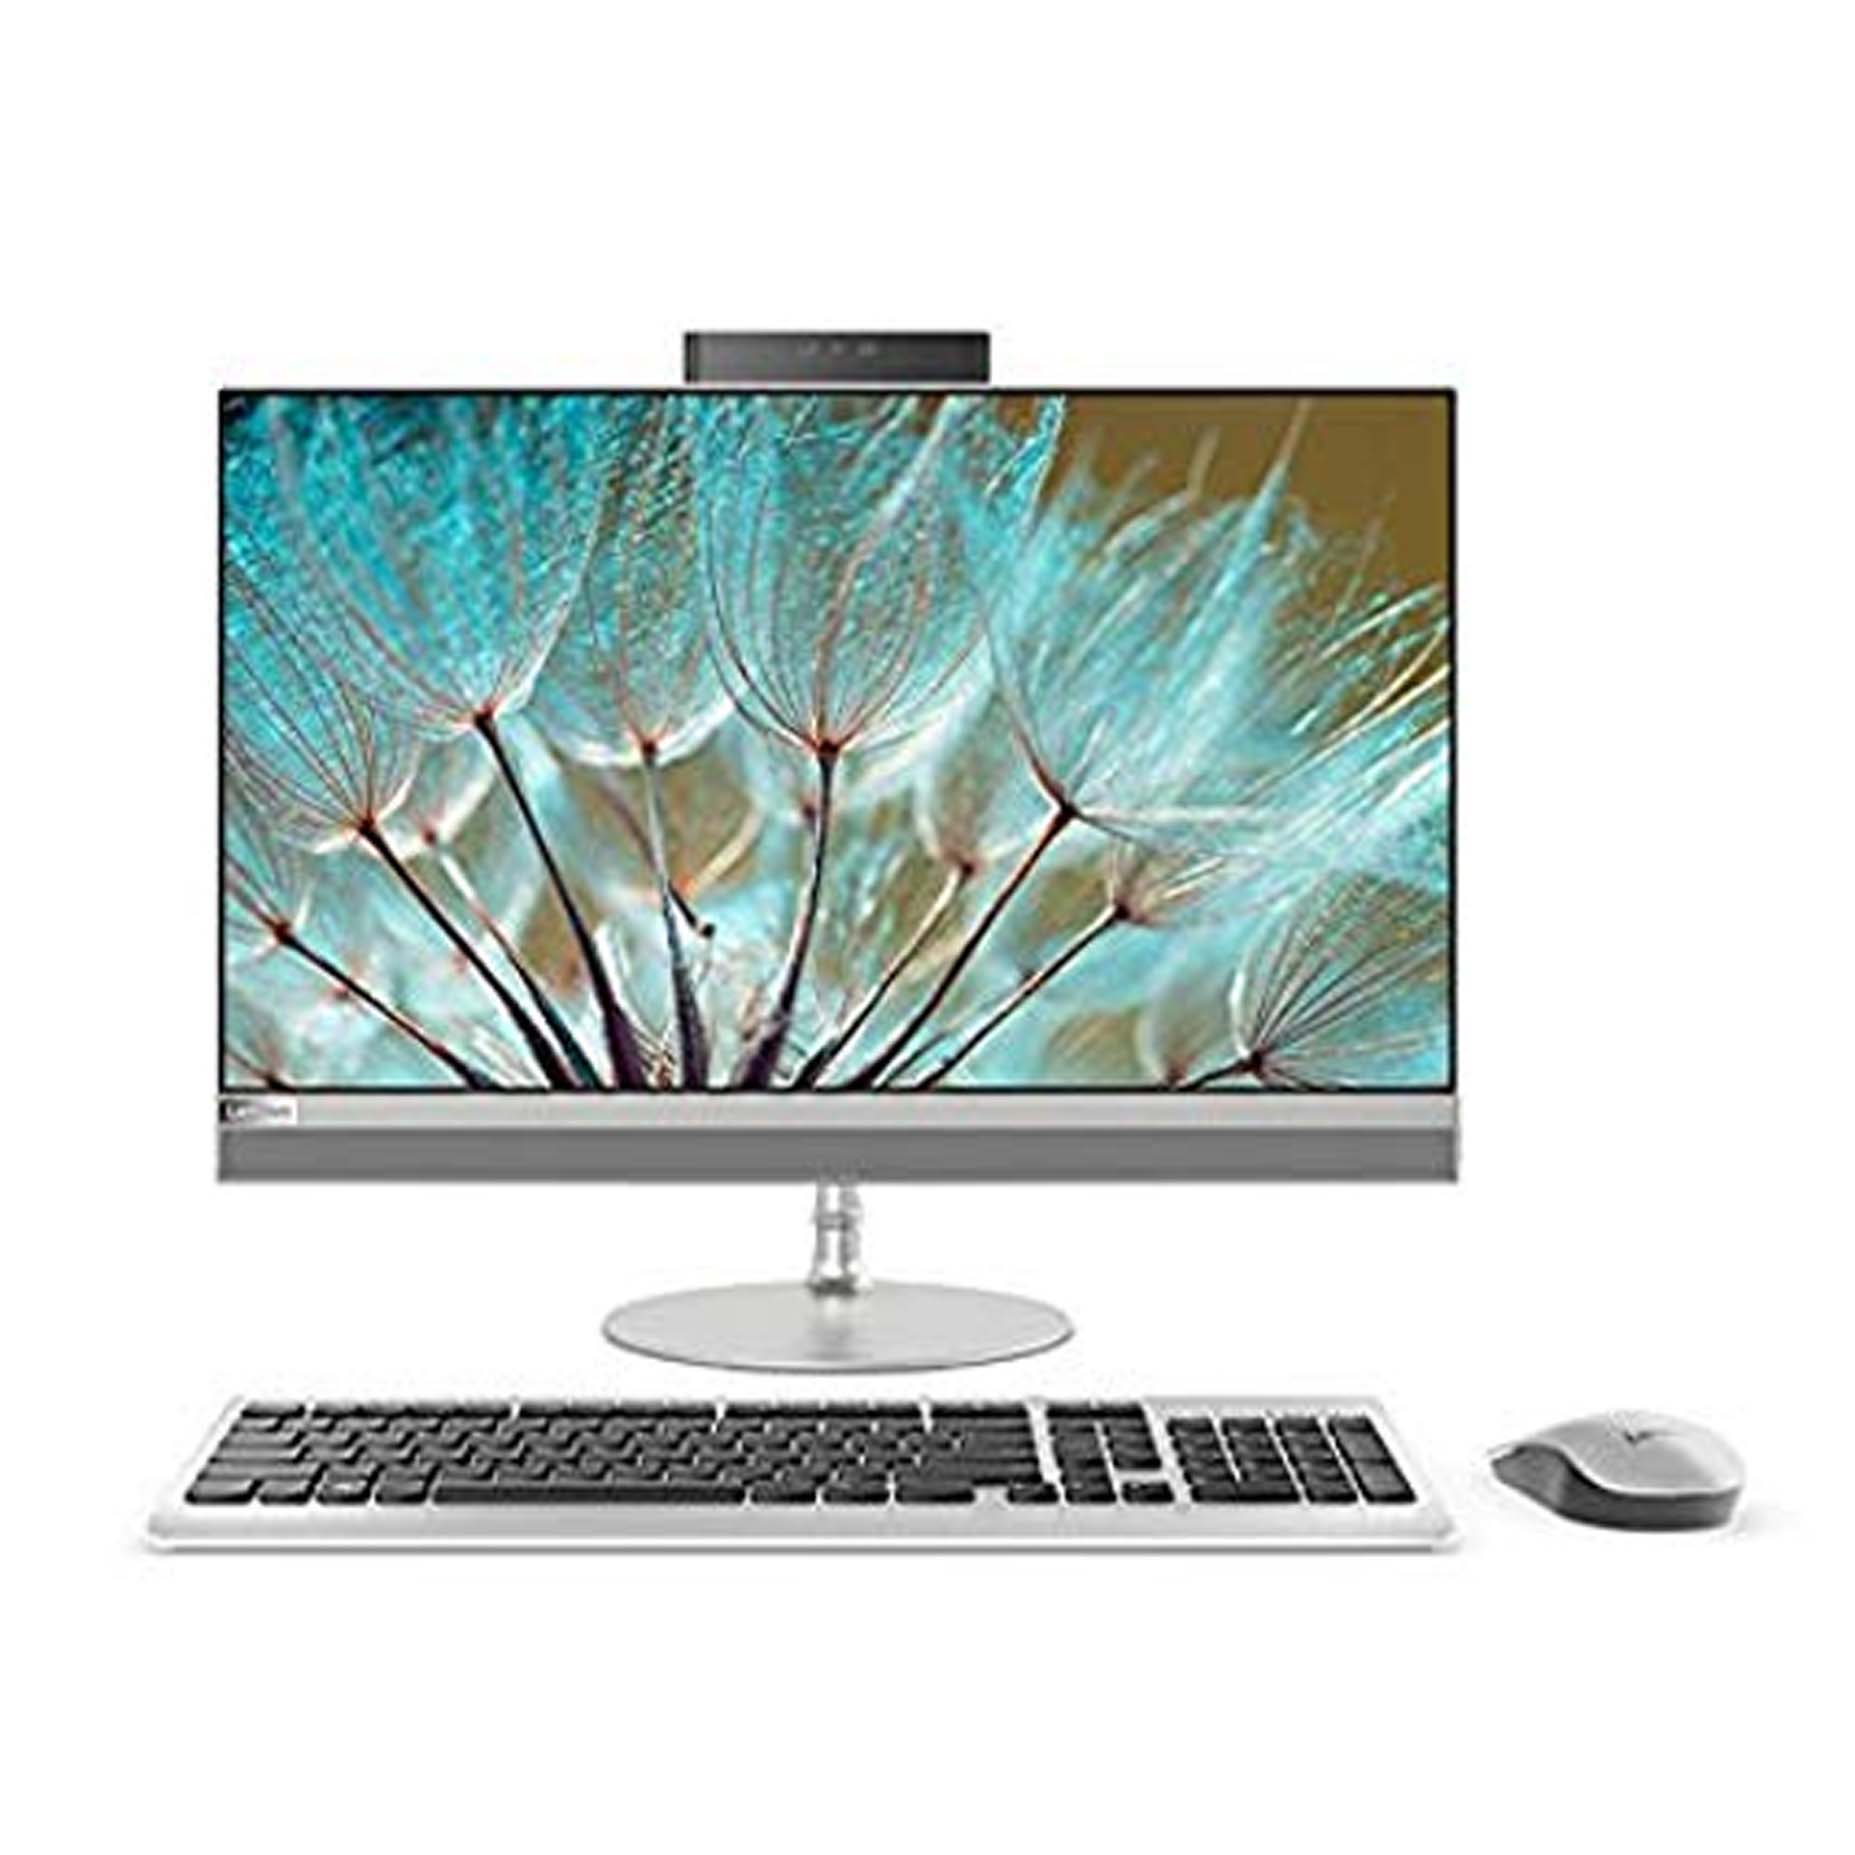 Harga Lenovo IdeaCentre 520-22ICB 0LID All in One i5-8400T 4GB 2TB Integrated Win10 21.5 Inch Grey